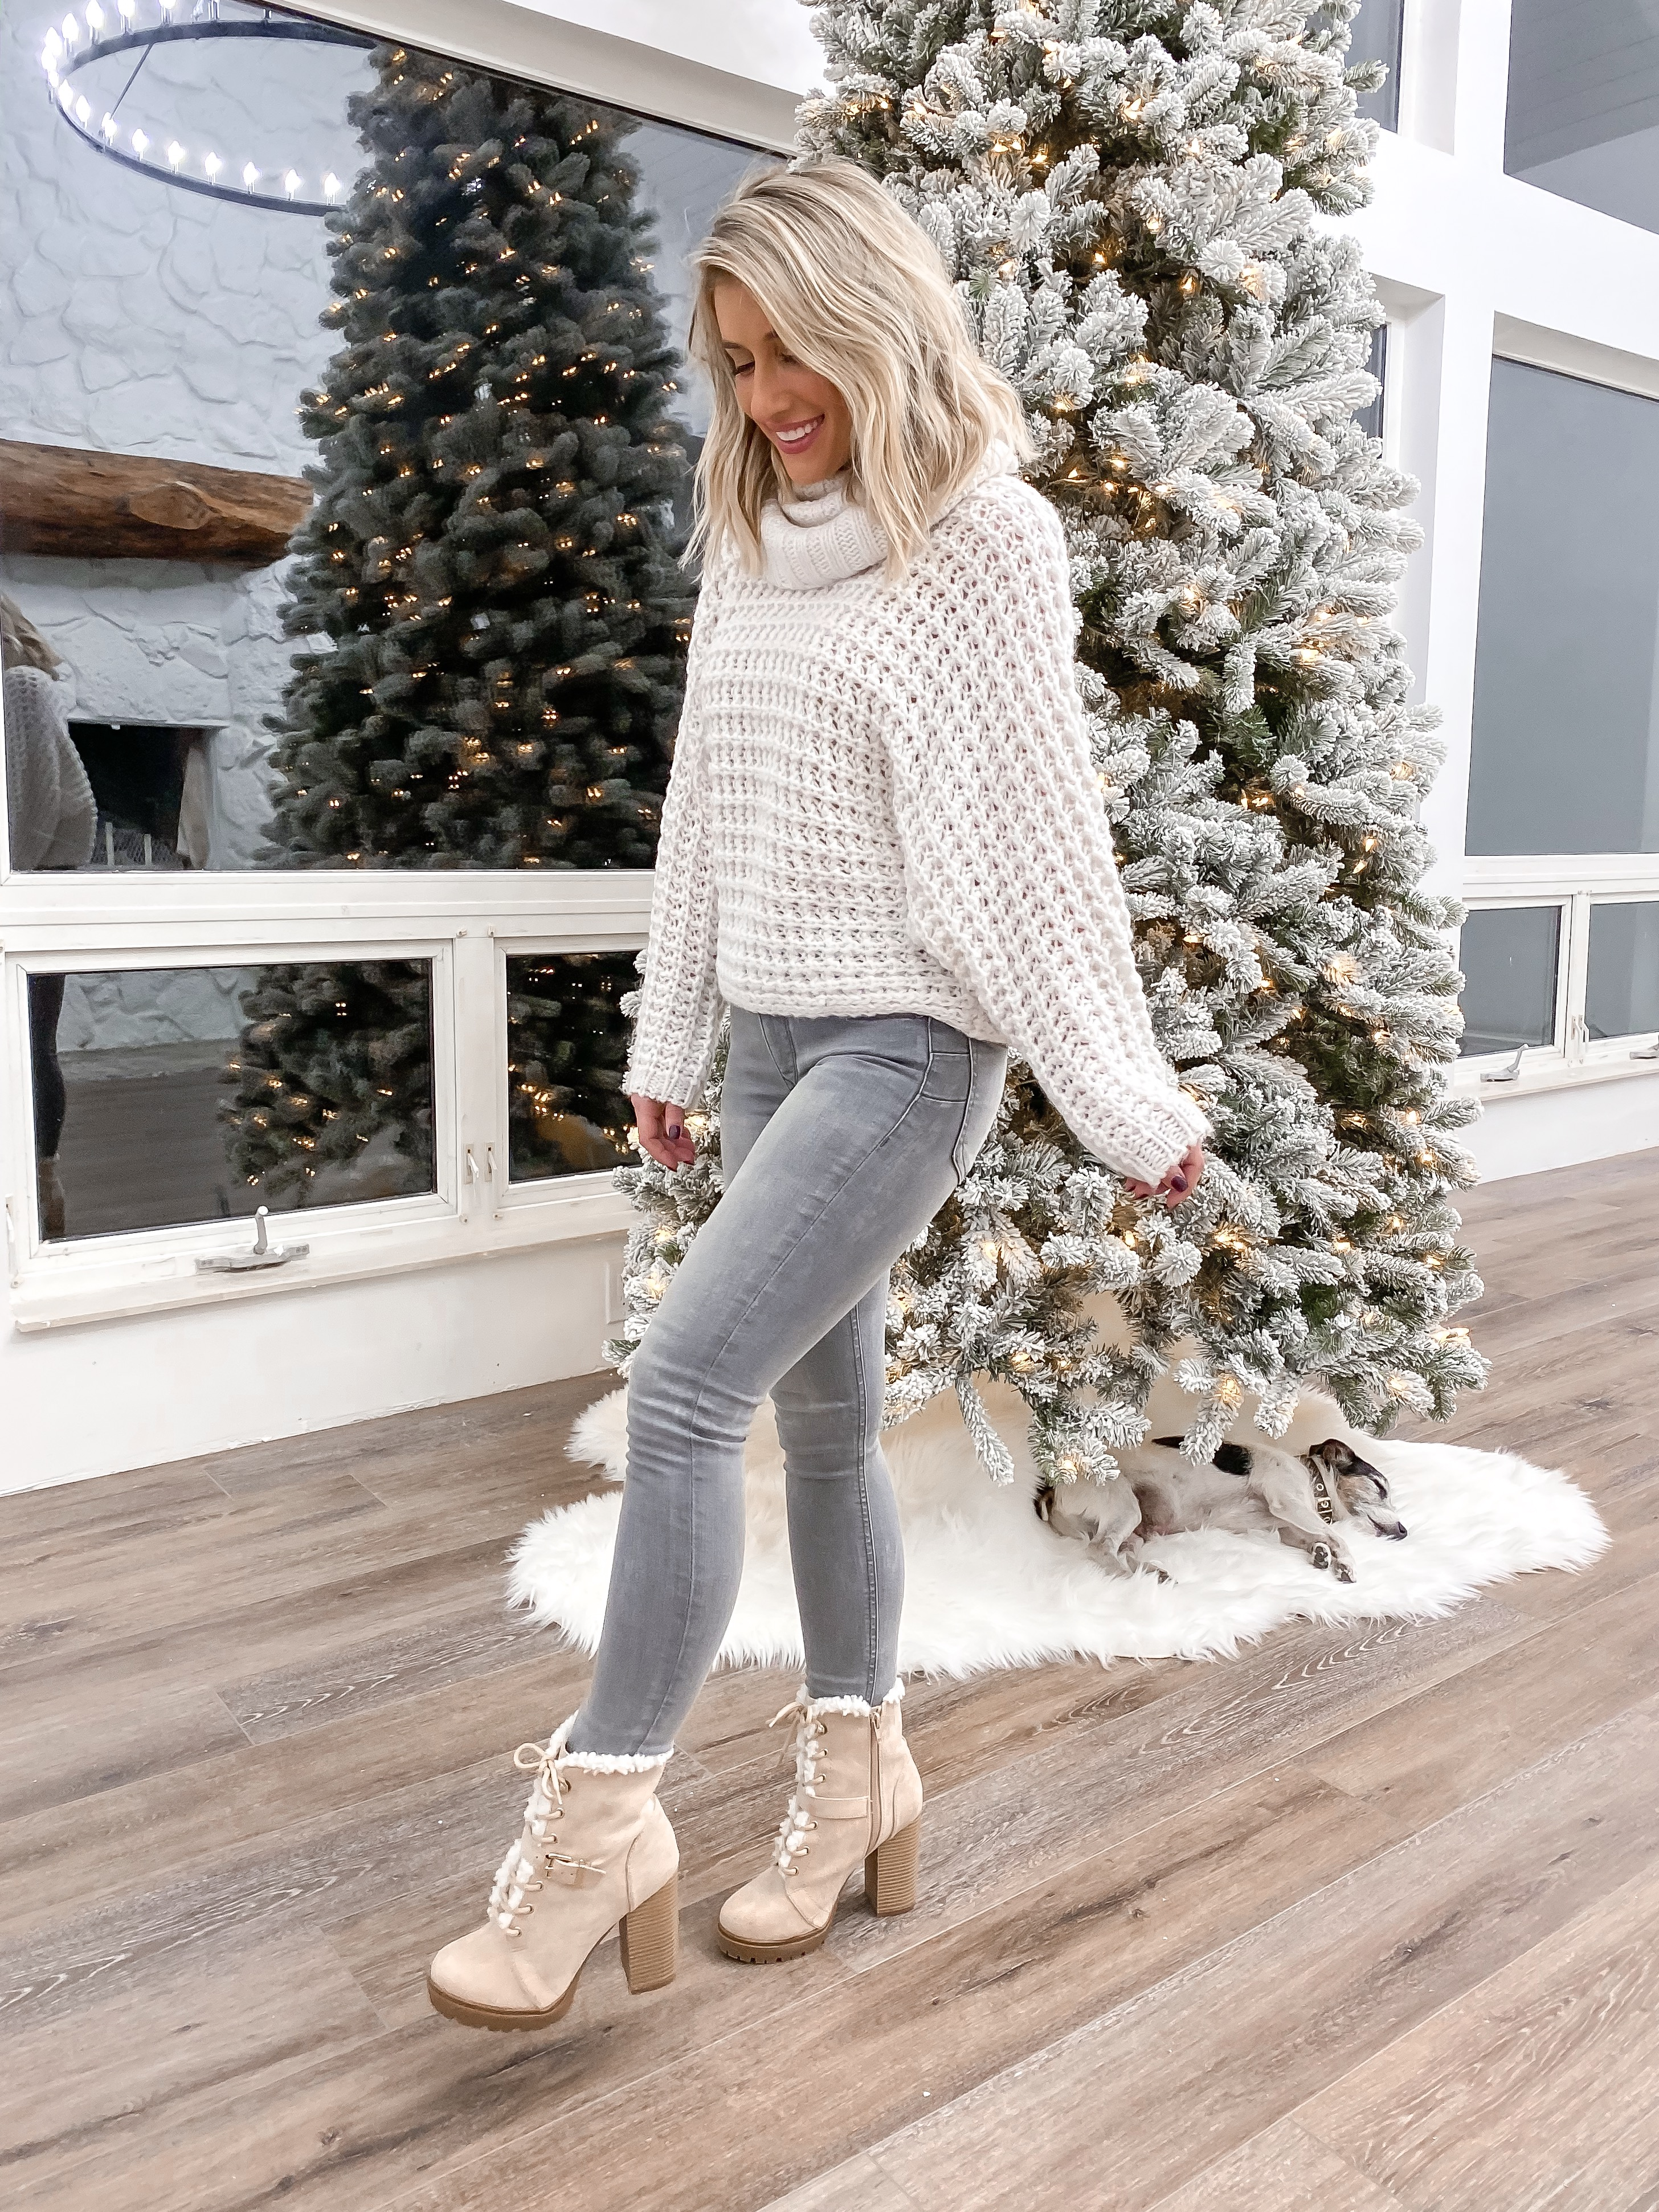 2 Laura Beverlin cozy winter outfit thanksgiving casual christmas outfit idea 12